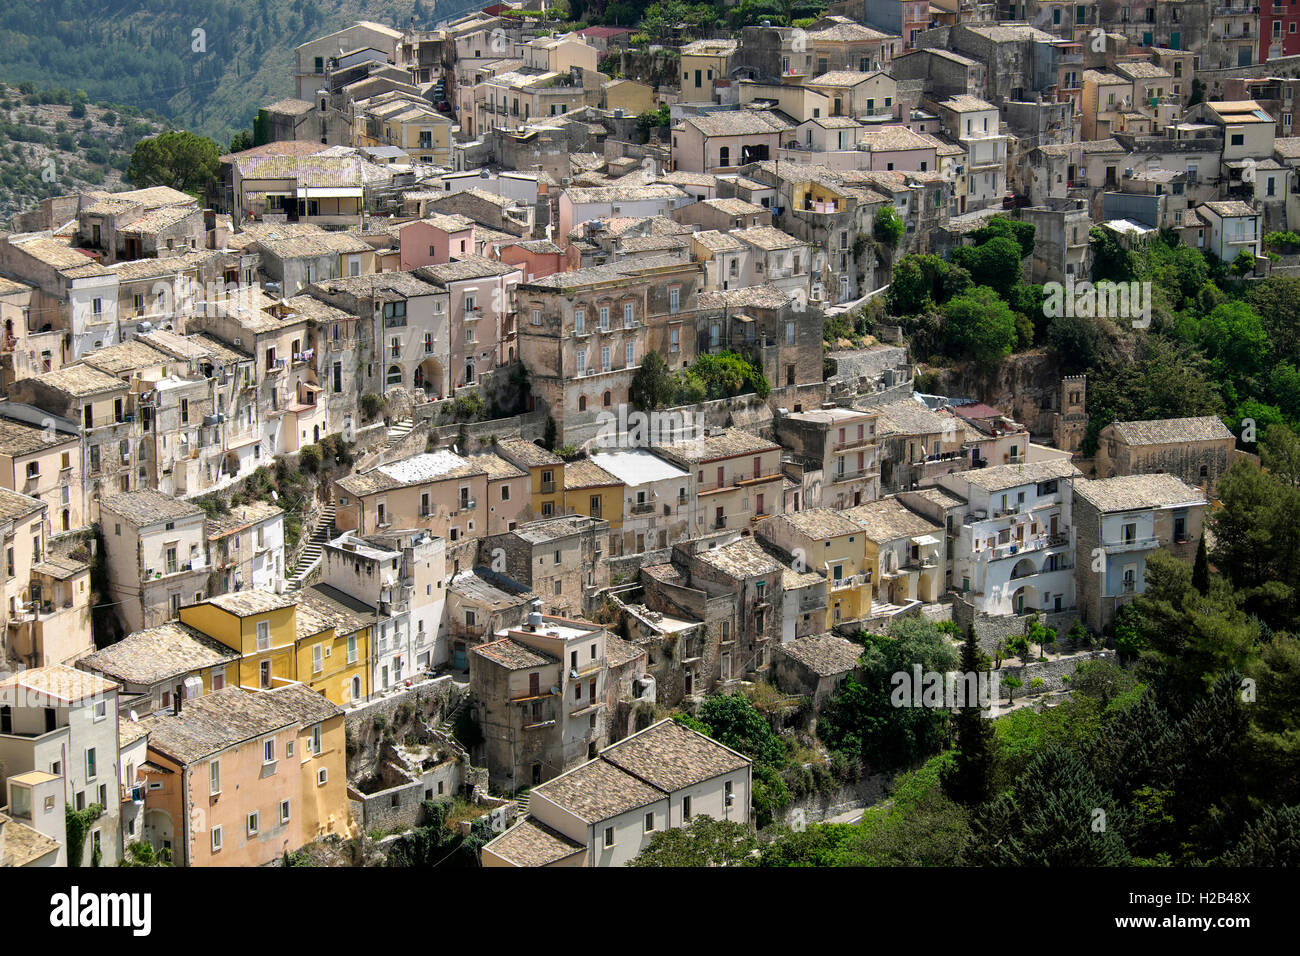 The historic centre of Ragusa Ibla, Sicily, Italy - Stock Image